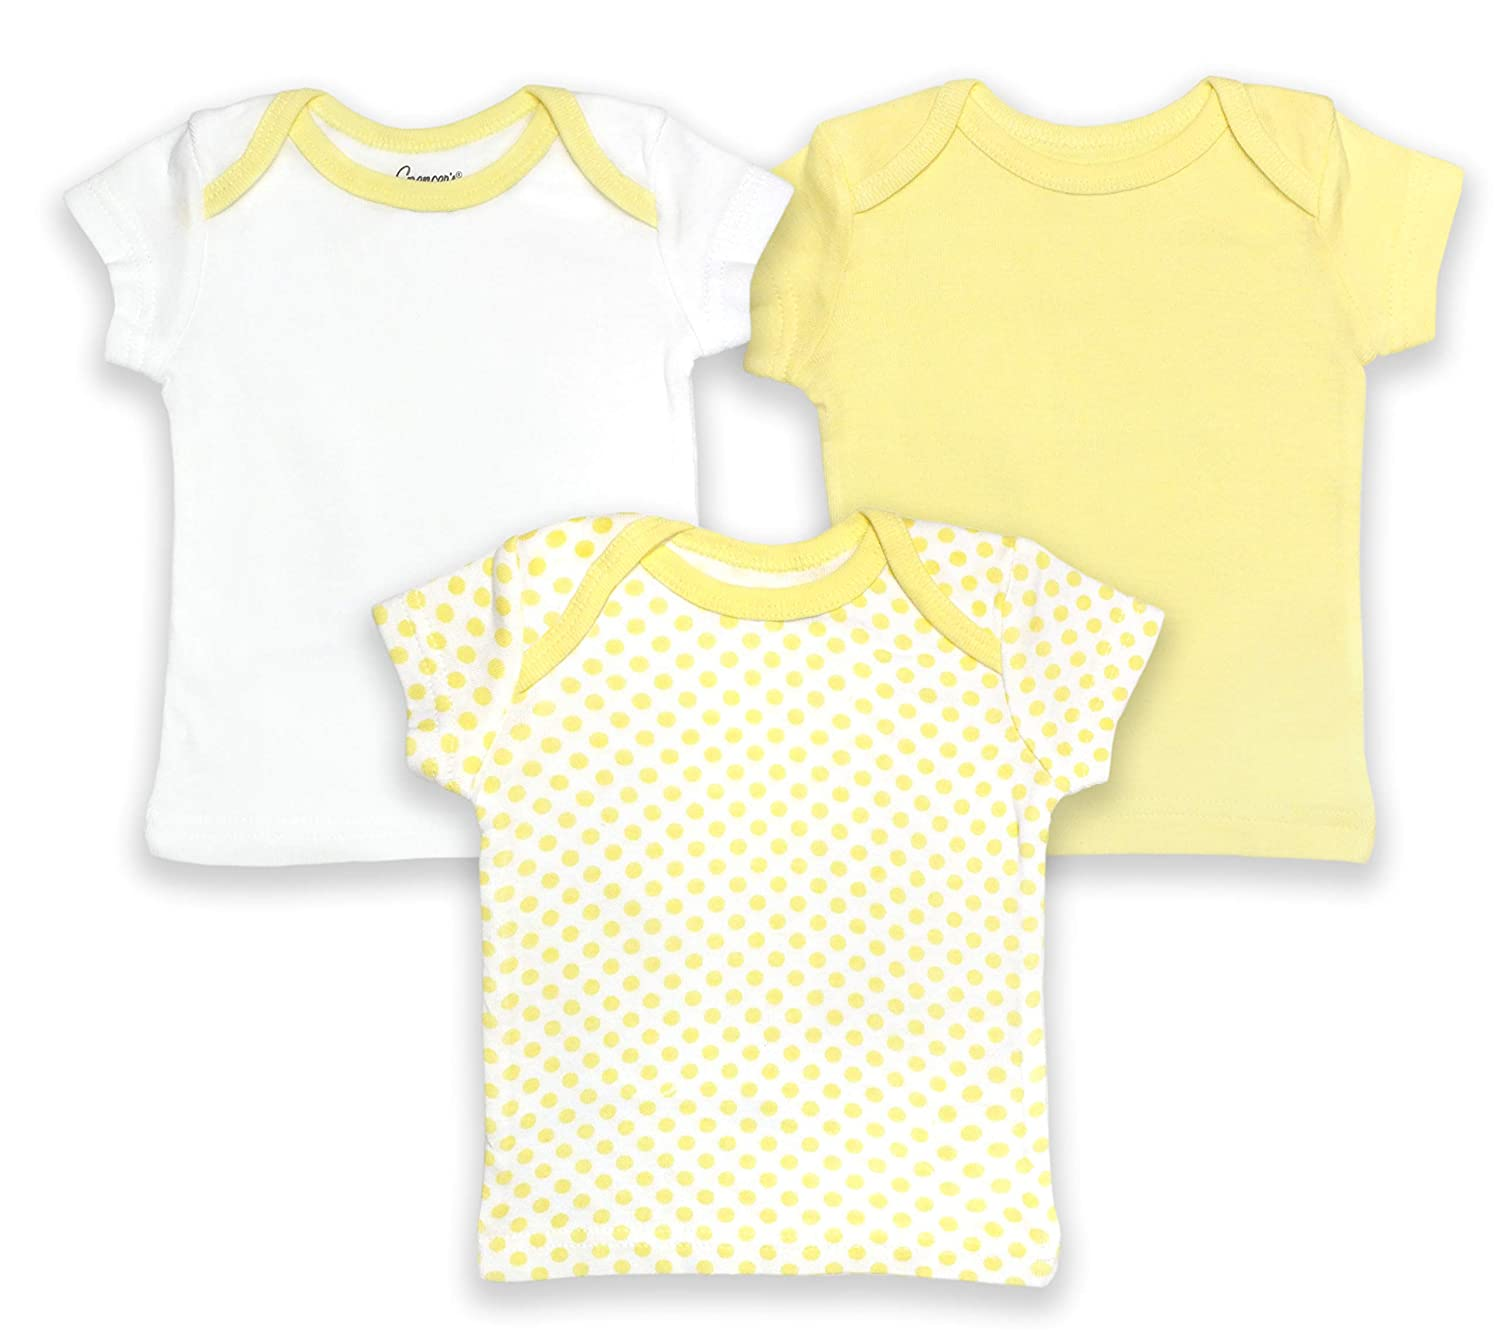 "Spencers /""Classic Pastels/"" Girls Lap Shoulder Shirts 3-Pack"